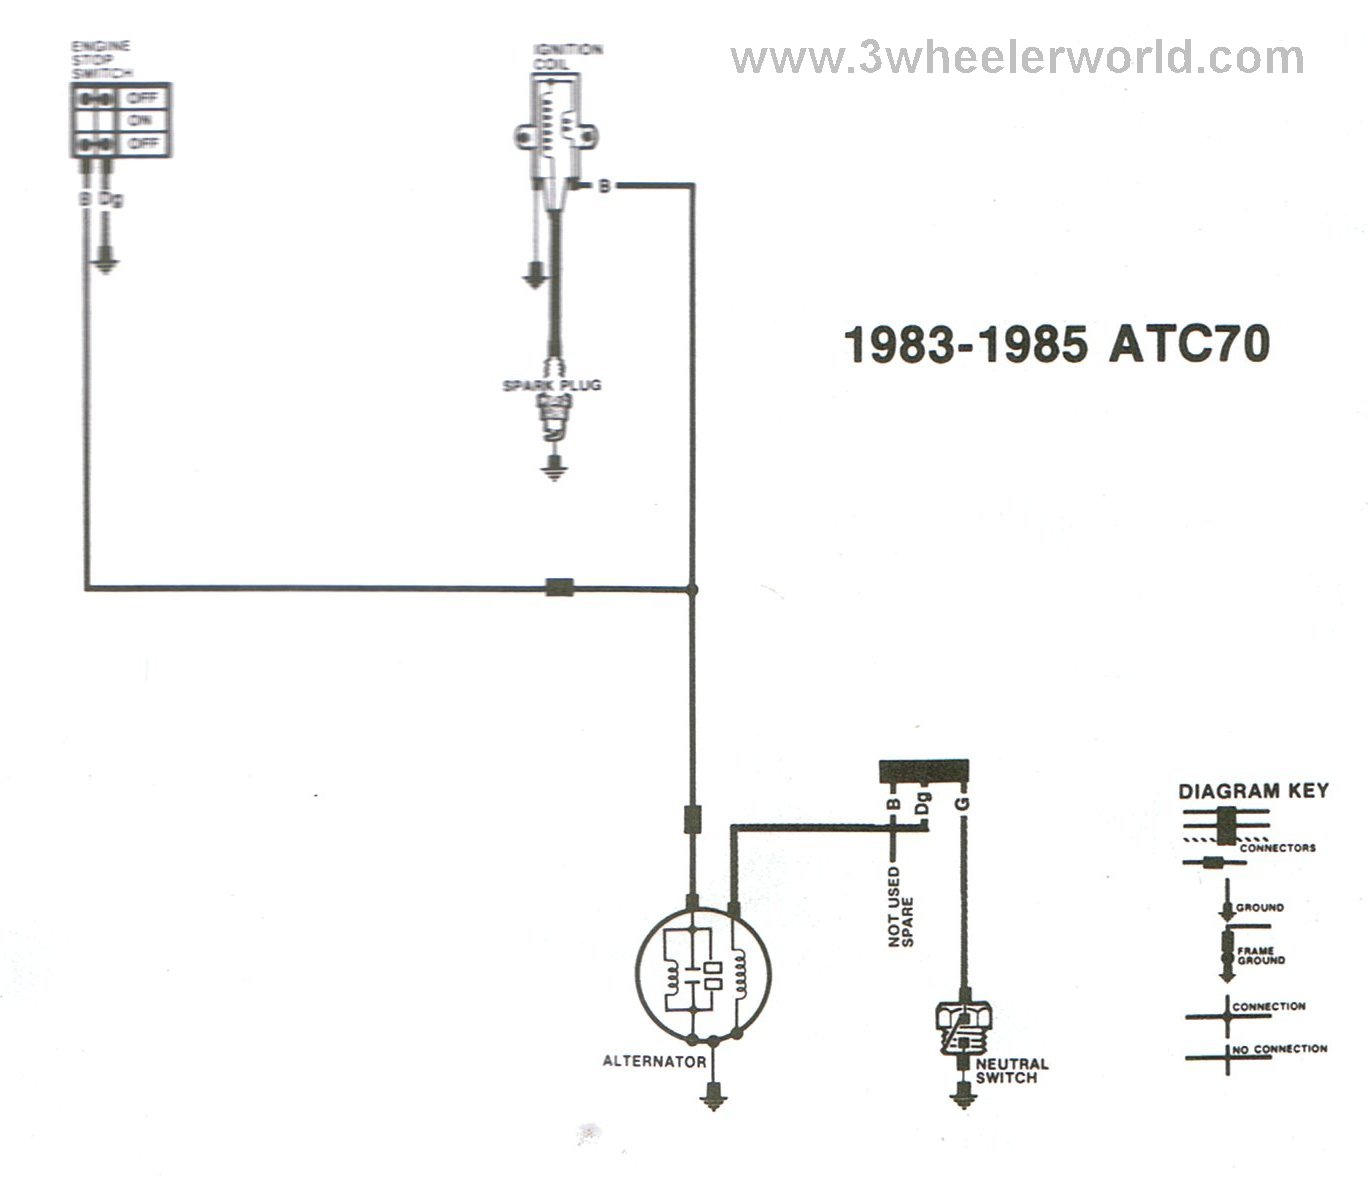 wiring diagram also honda trx 125 wiring diagram besides